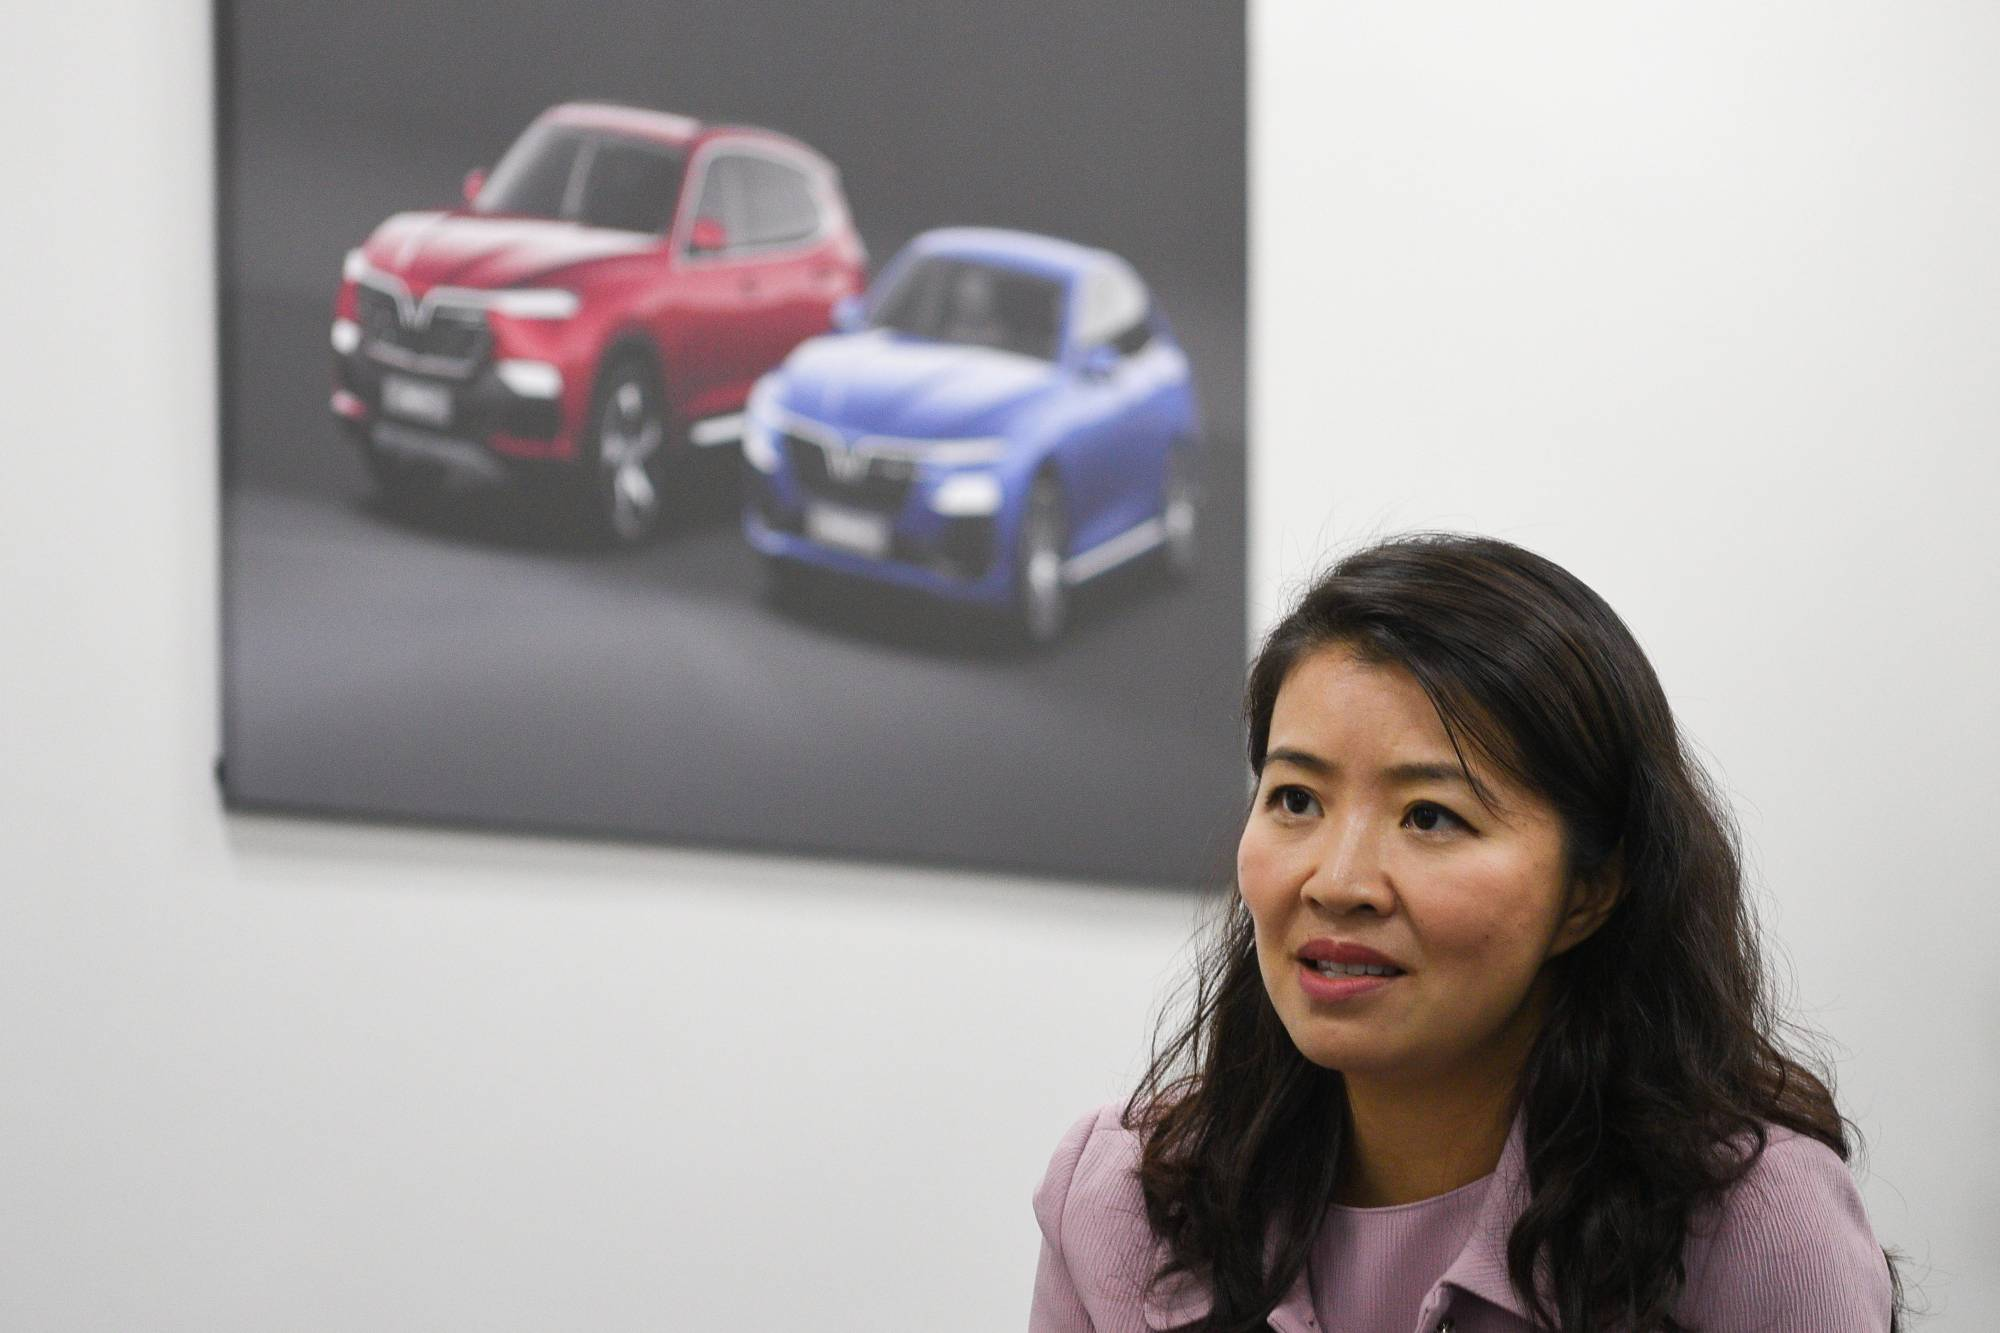 VinFast CEO Nguyen Thi Van Anh during an interview on April 22. | REUTERS